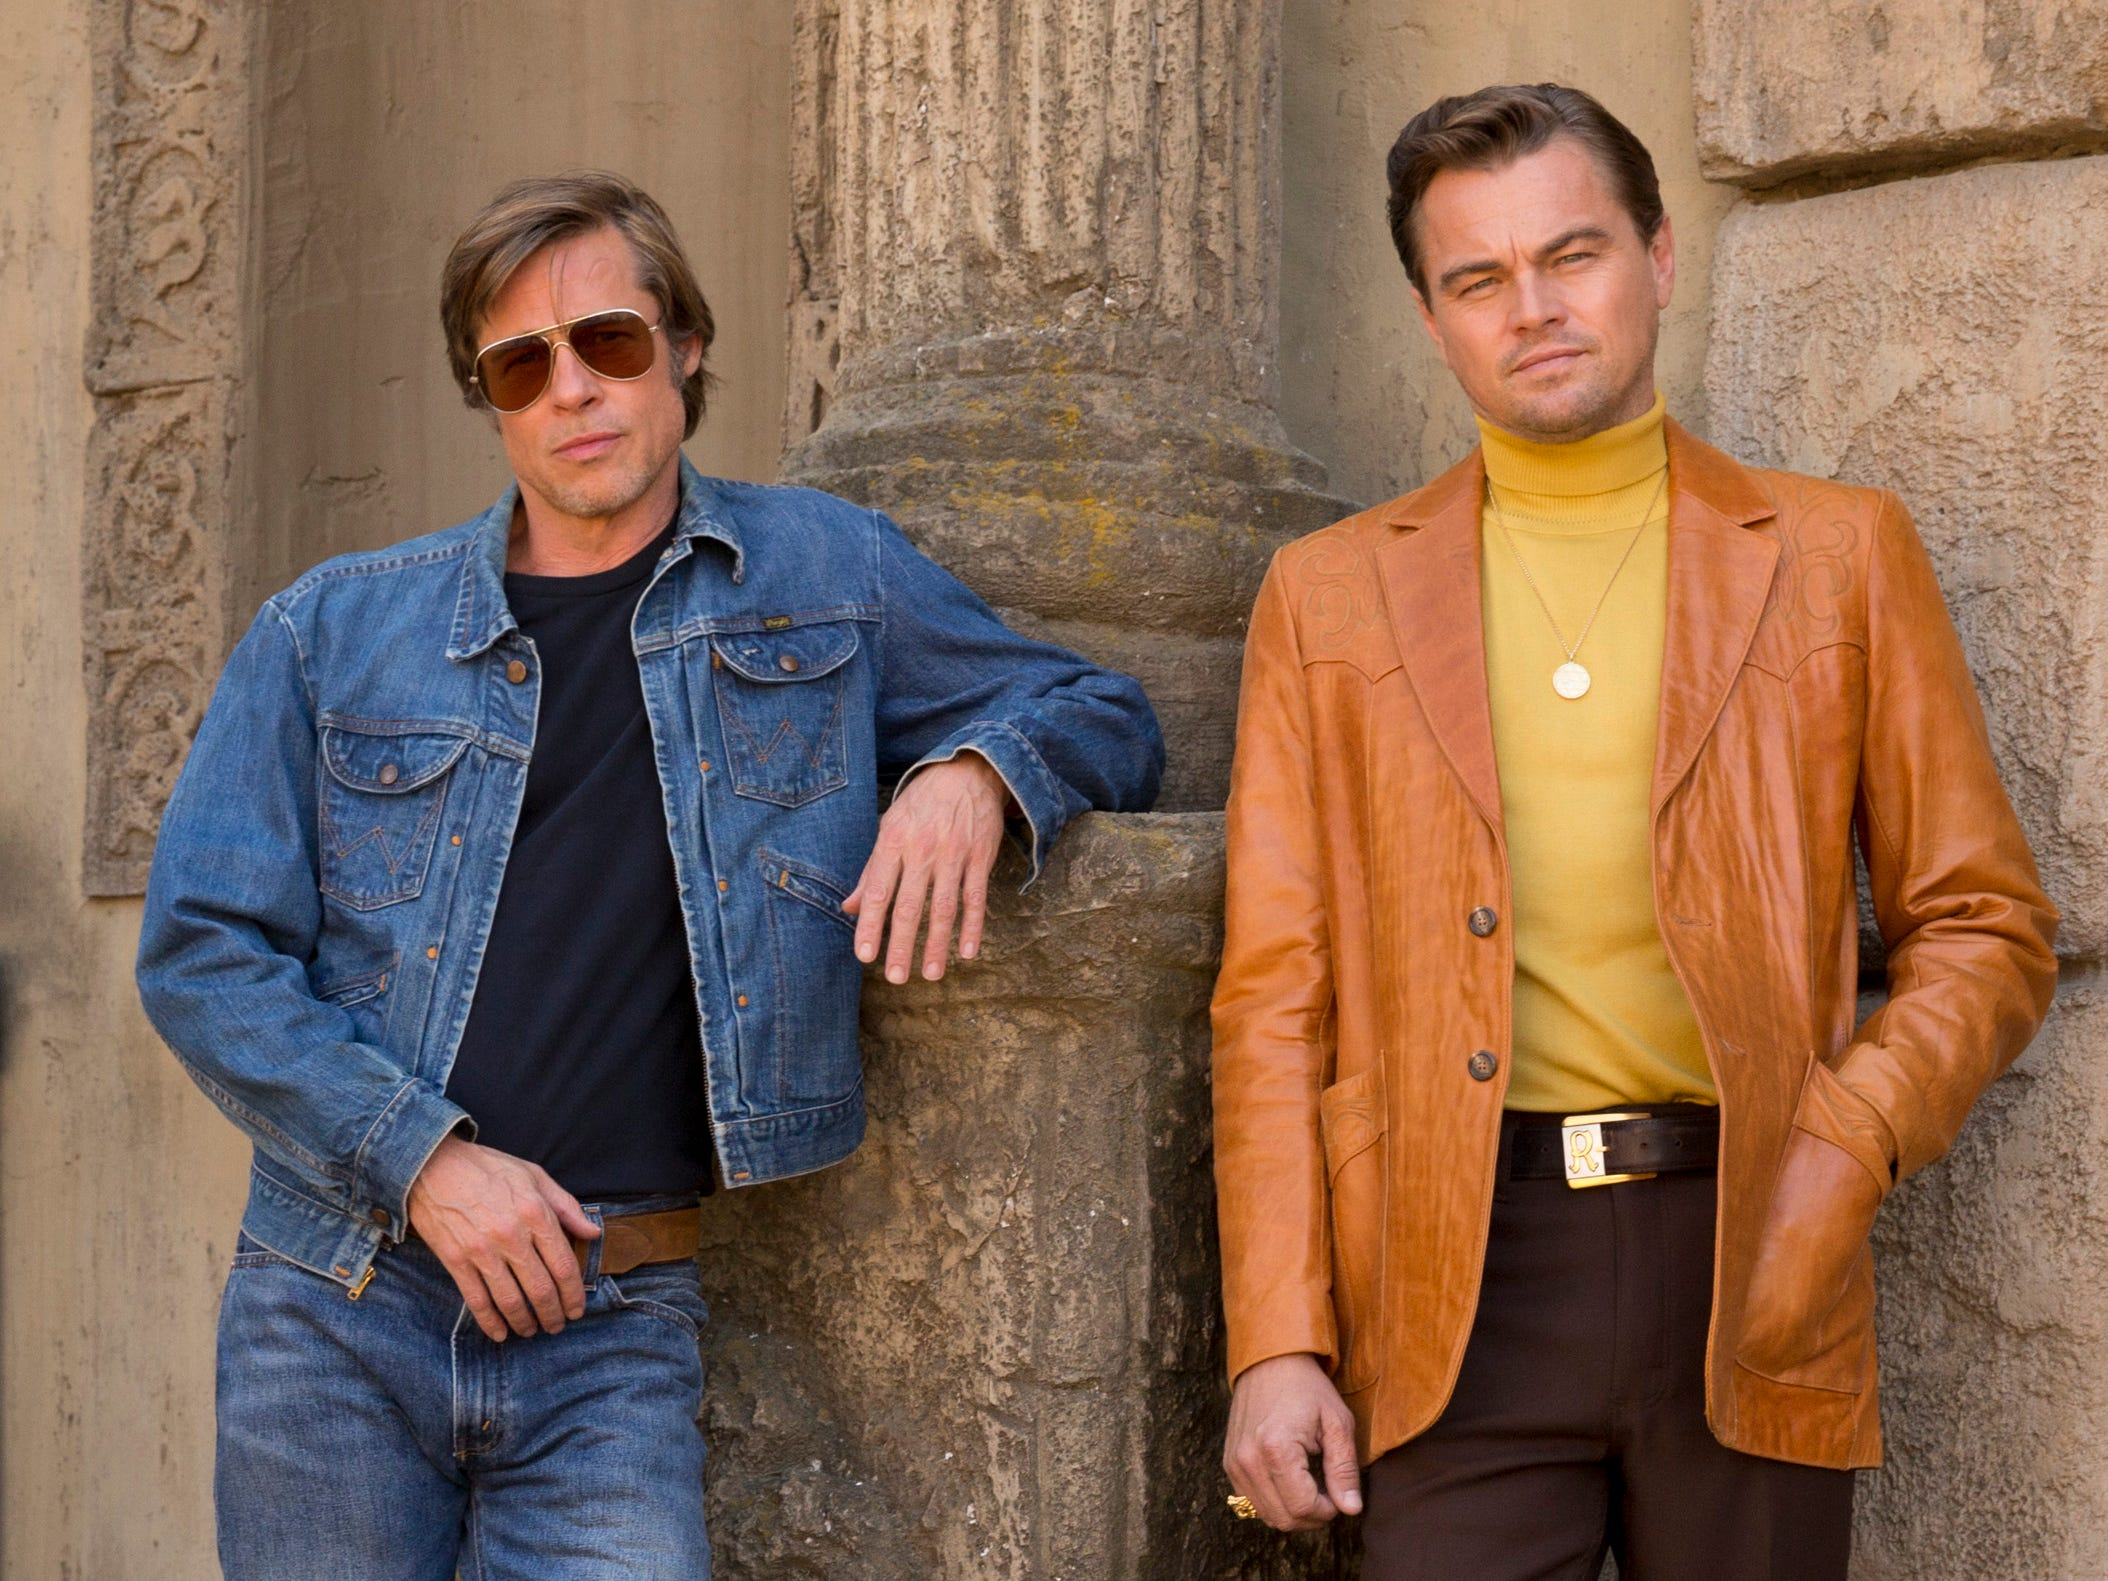 Leonardo DiCaprio, Brad Pitt go all 1969 in first 'Once Upon a Time in Hollywood' trailer